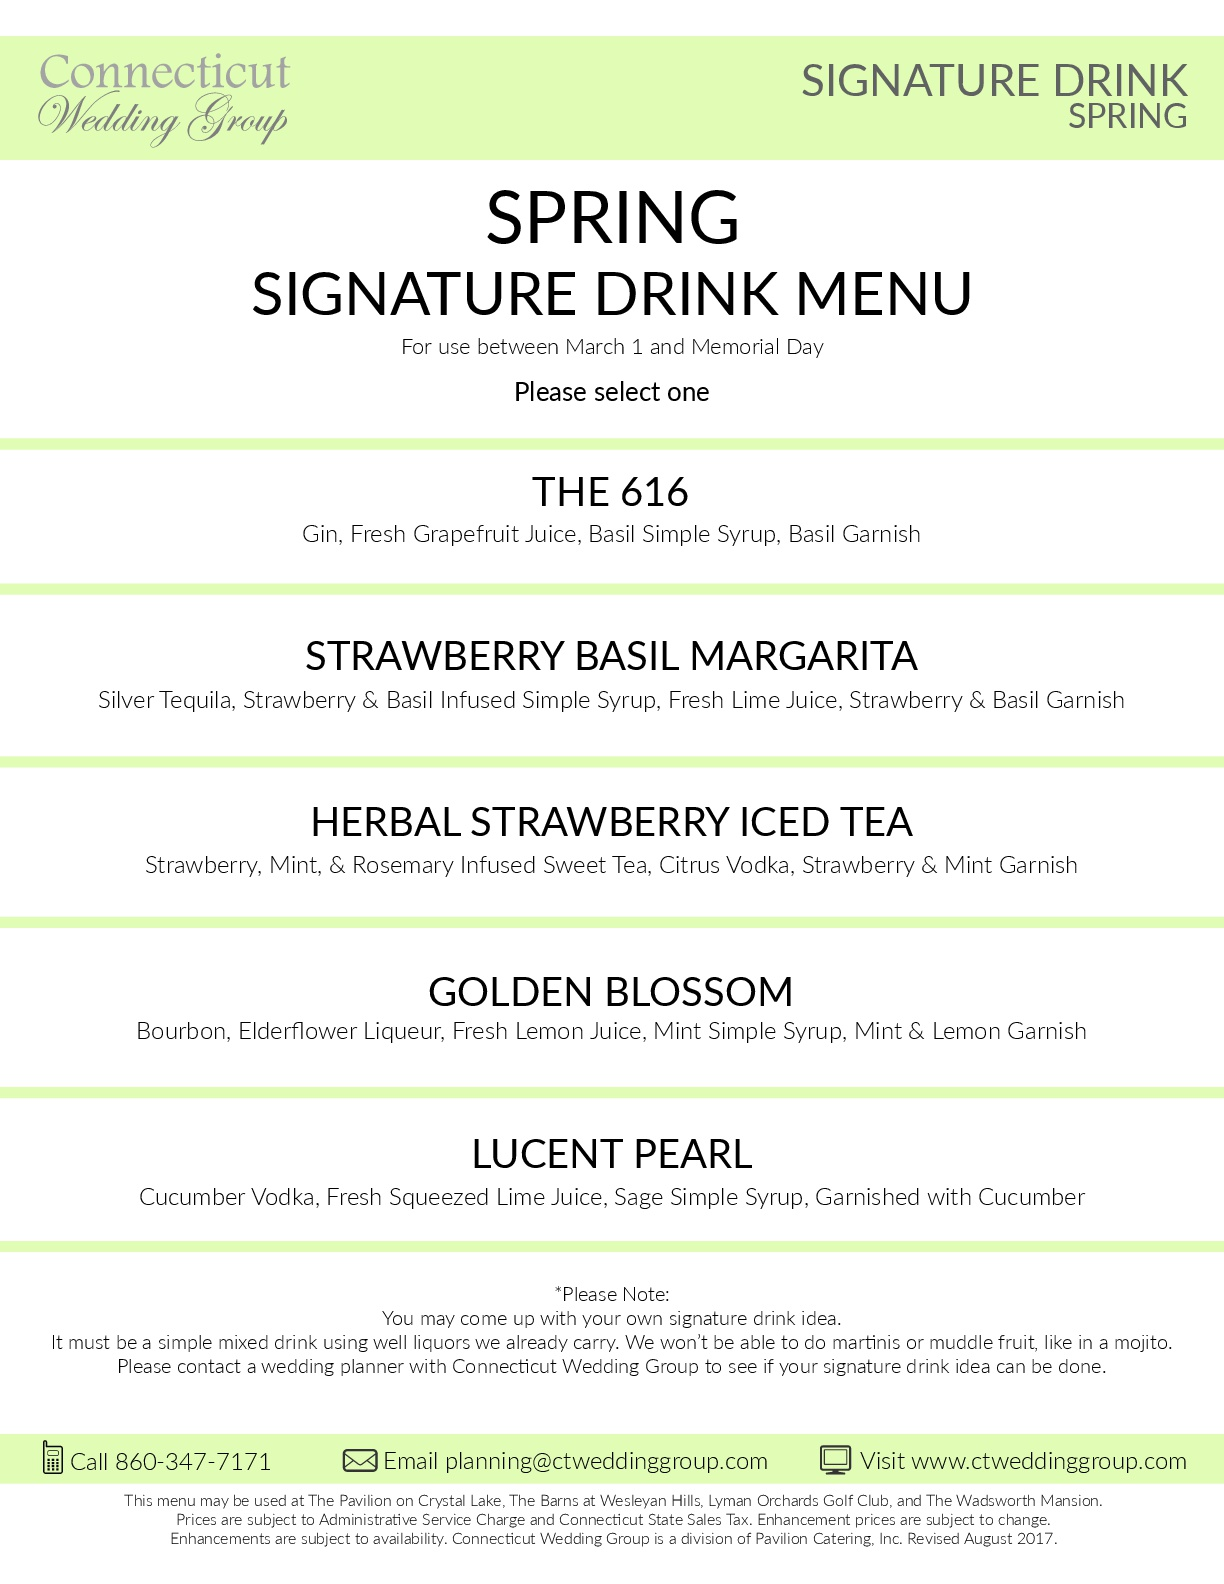 Spring-Signature-Drink-Menu_2018-Green-Website-Version-001